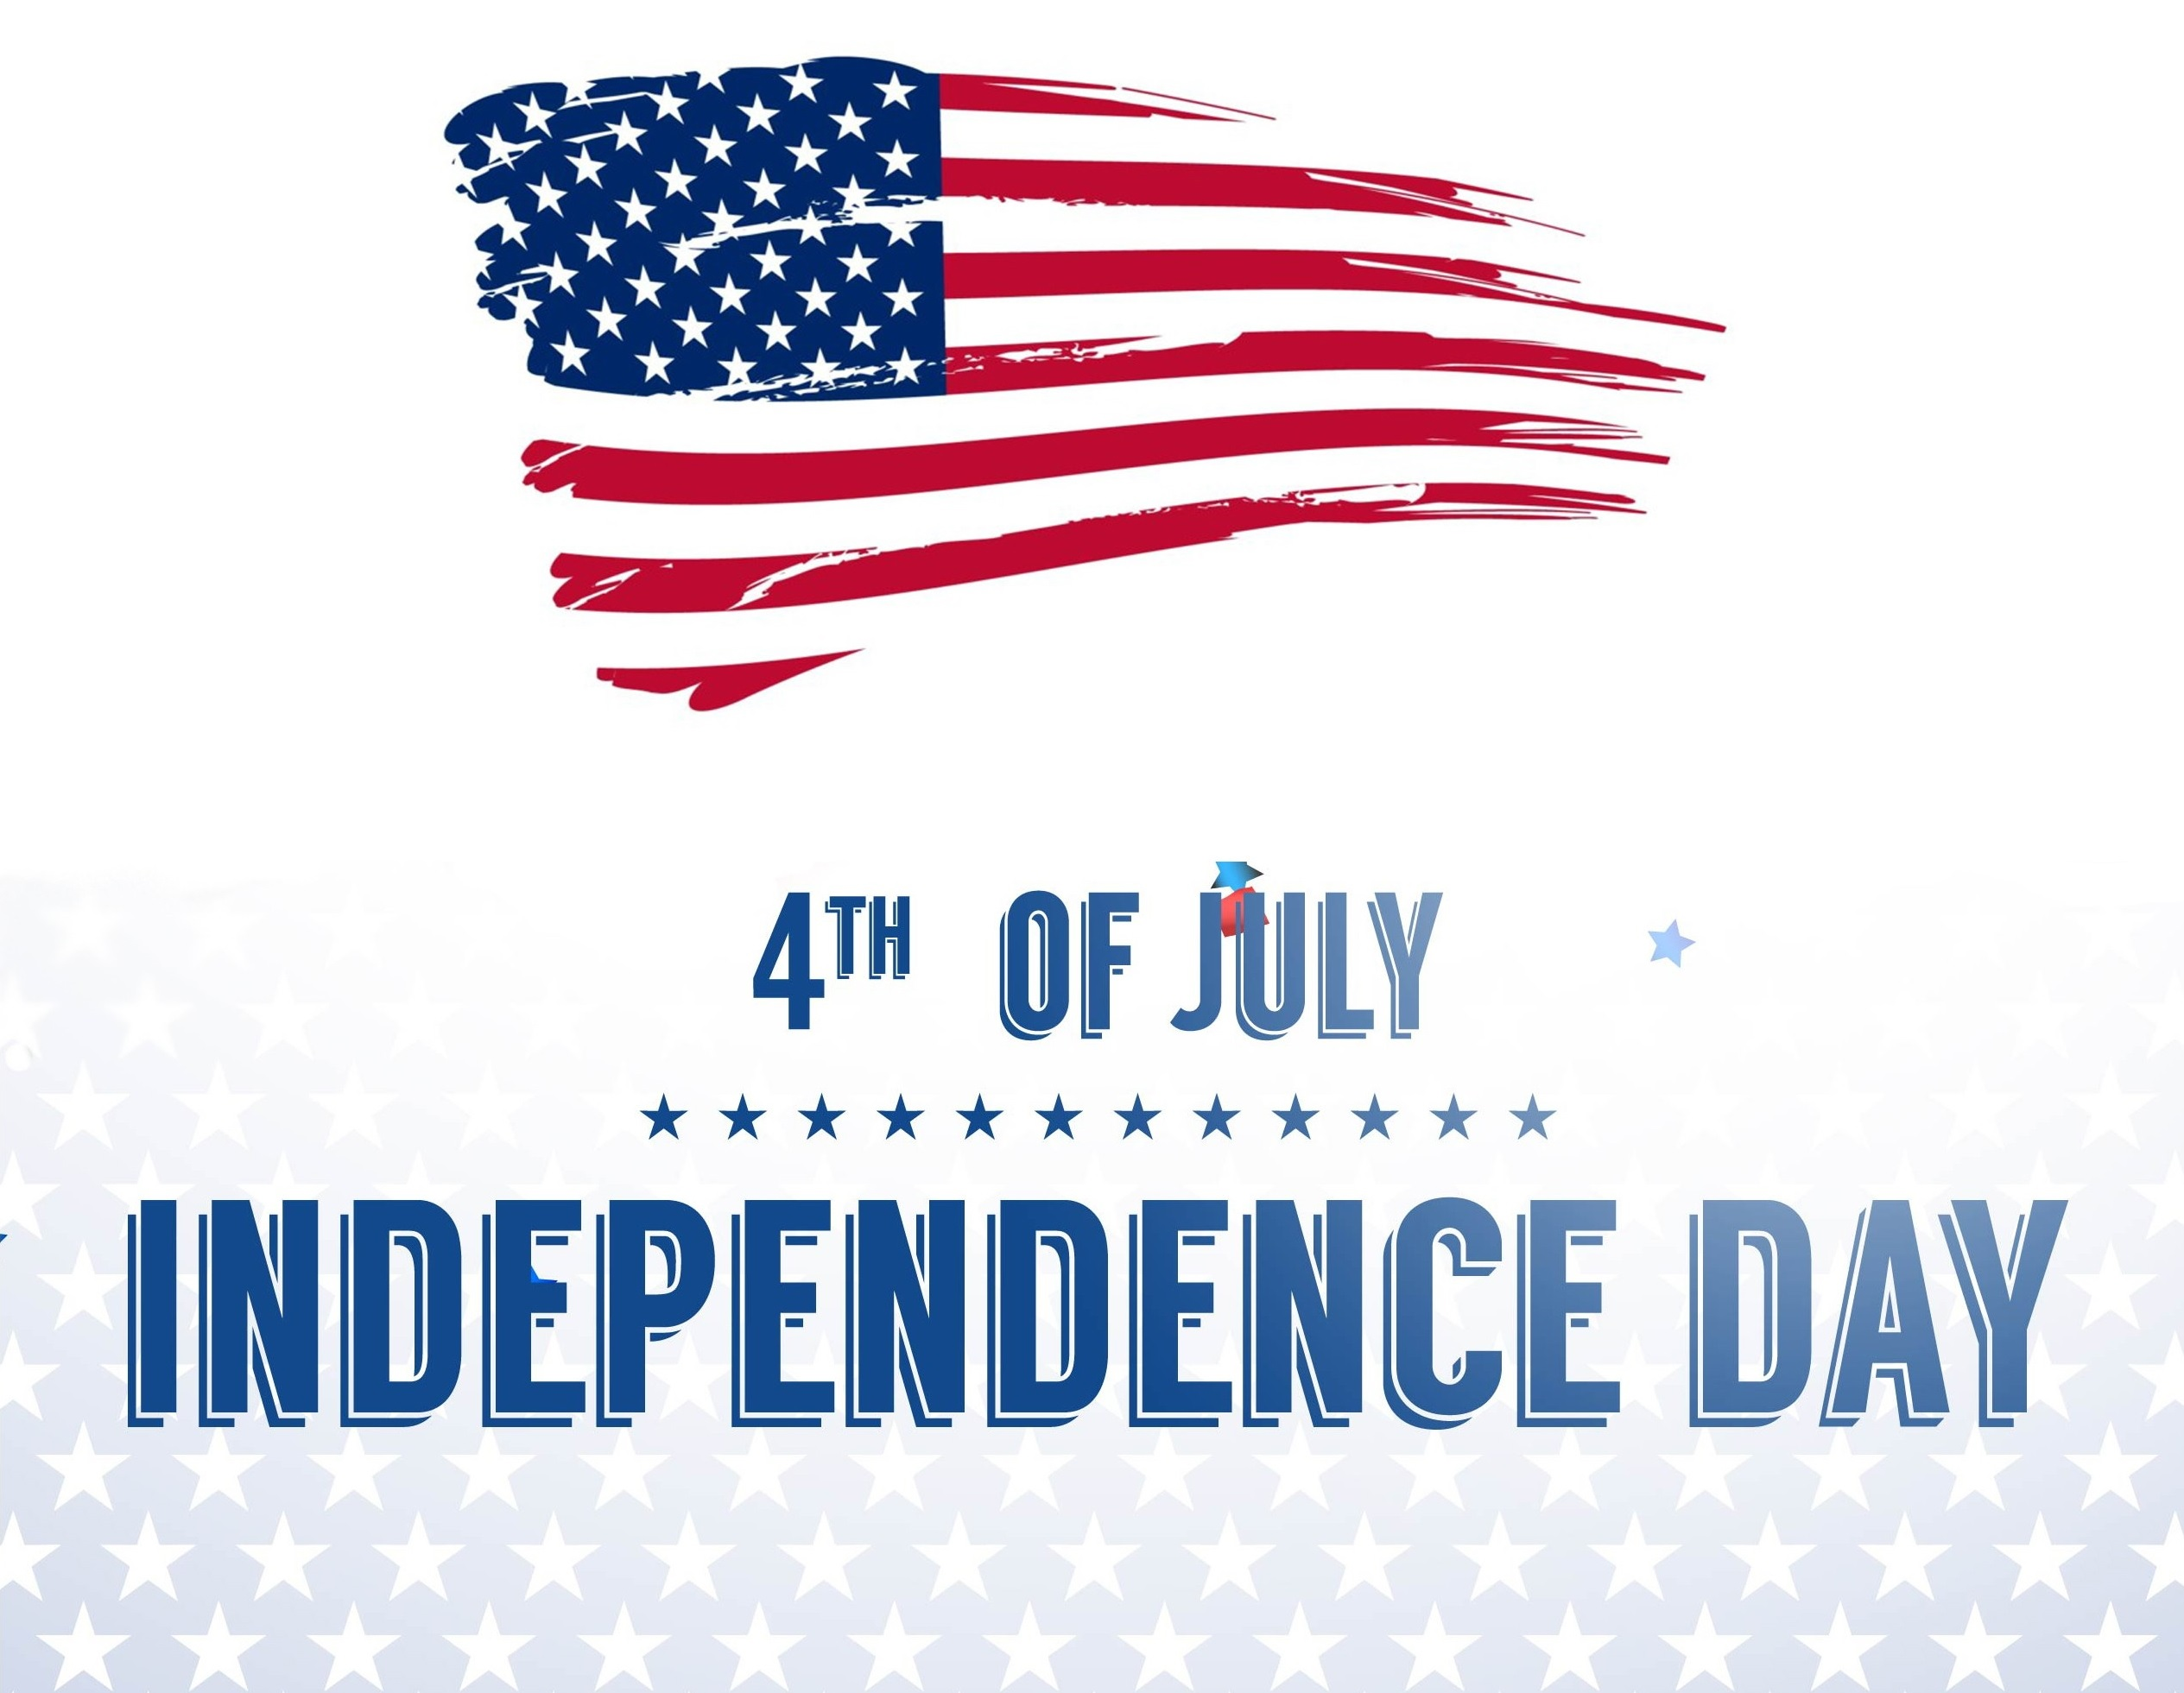 4th-of-July-Independence-Day-with-flying-flag.jpg